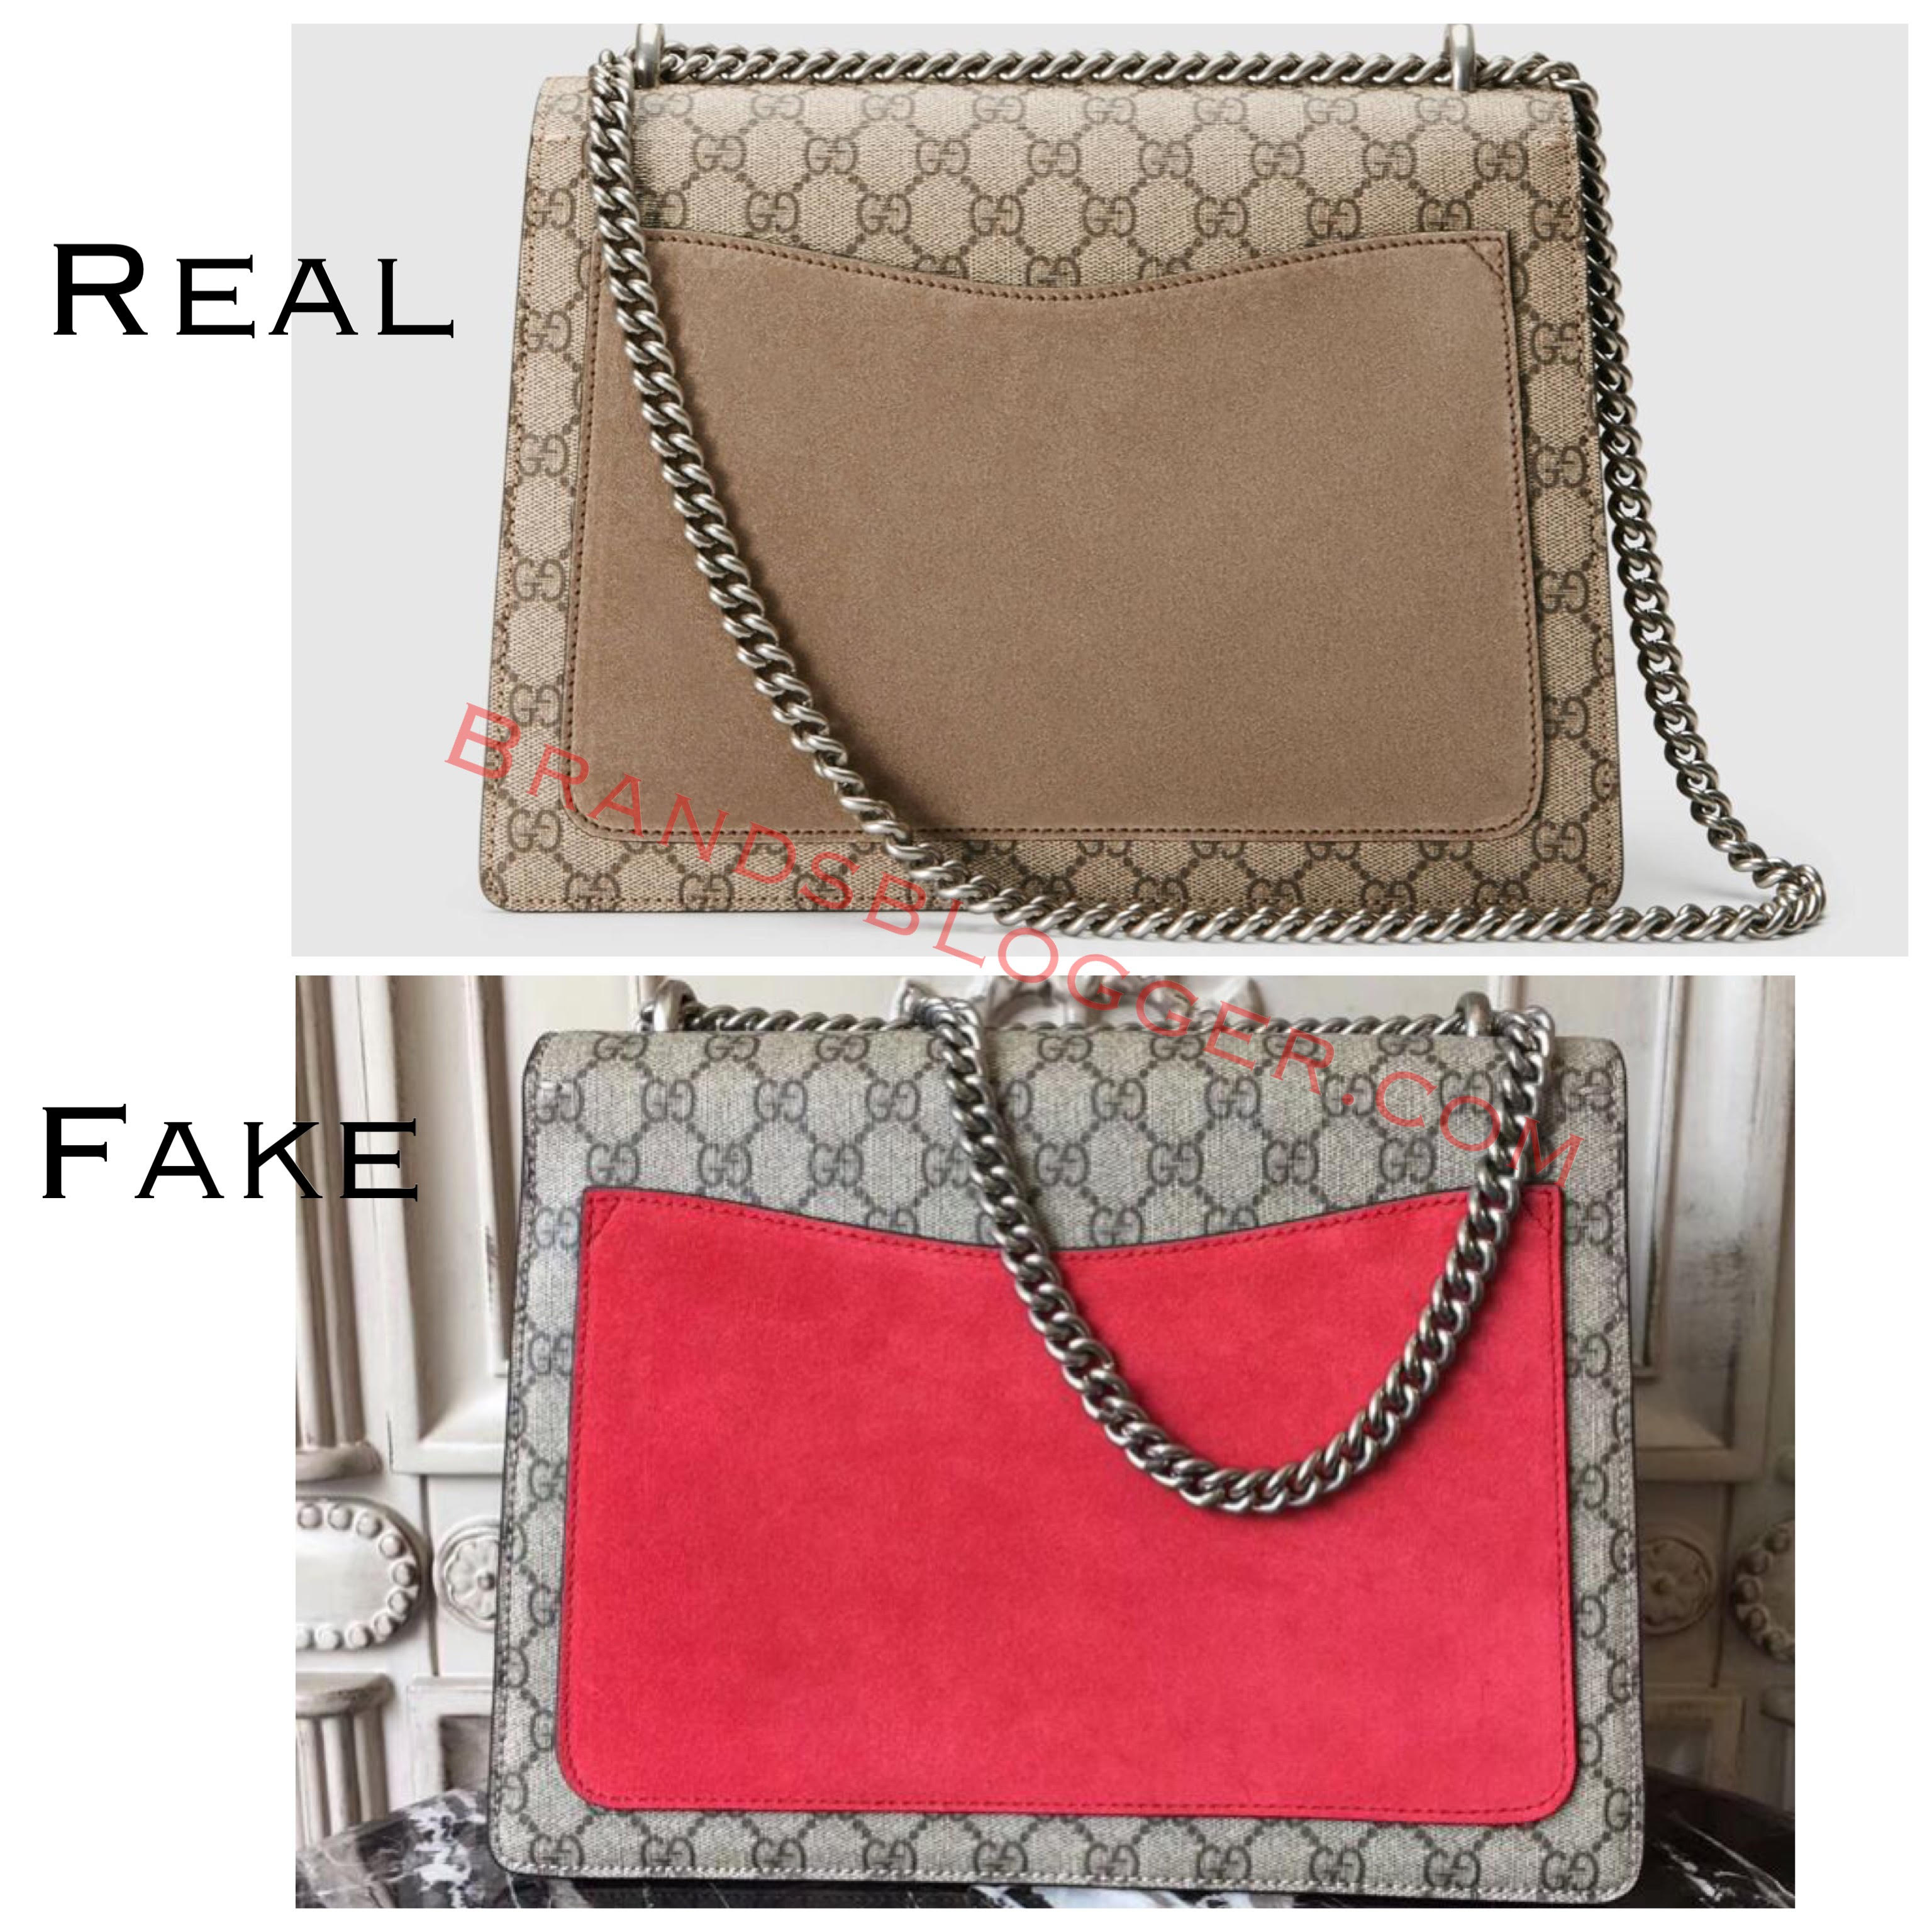 5f9f95a4 How To Spot A Fake Gucci Dionysus Bag - Brands Blogger